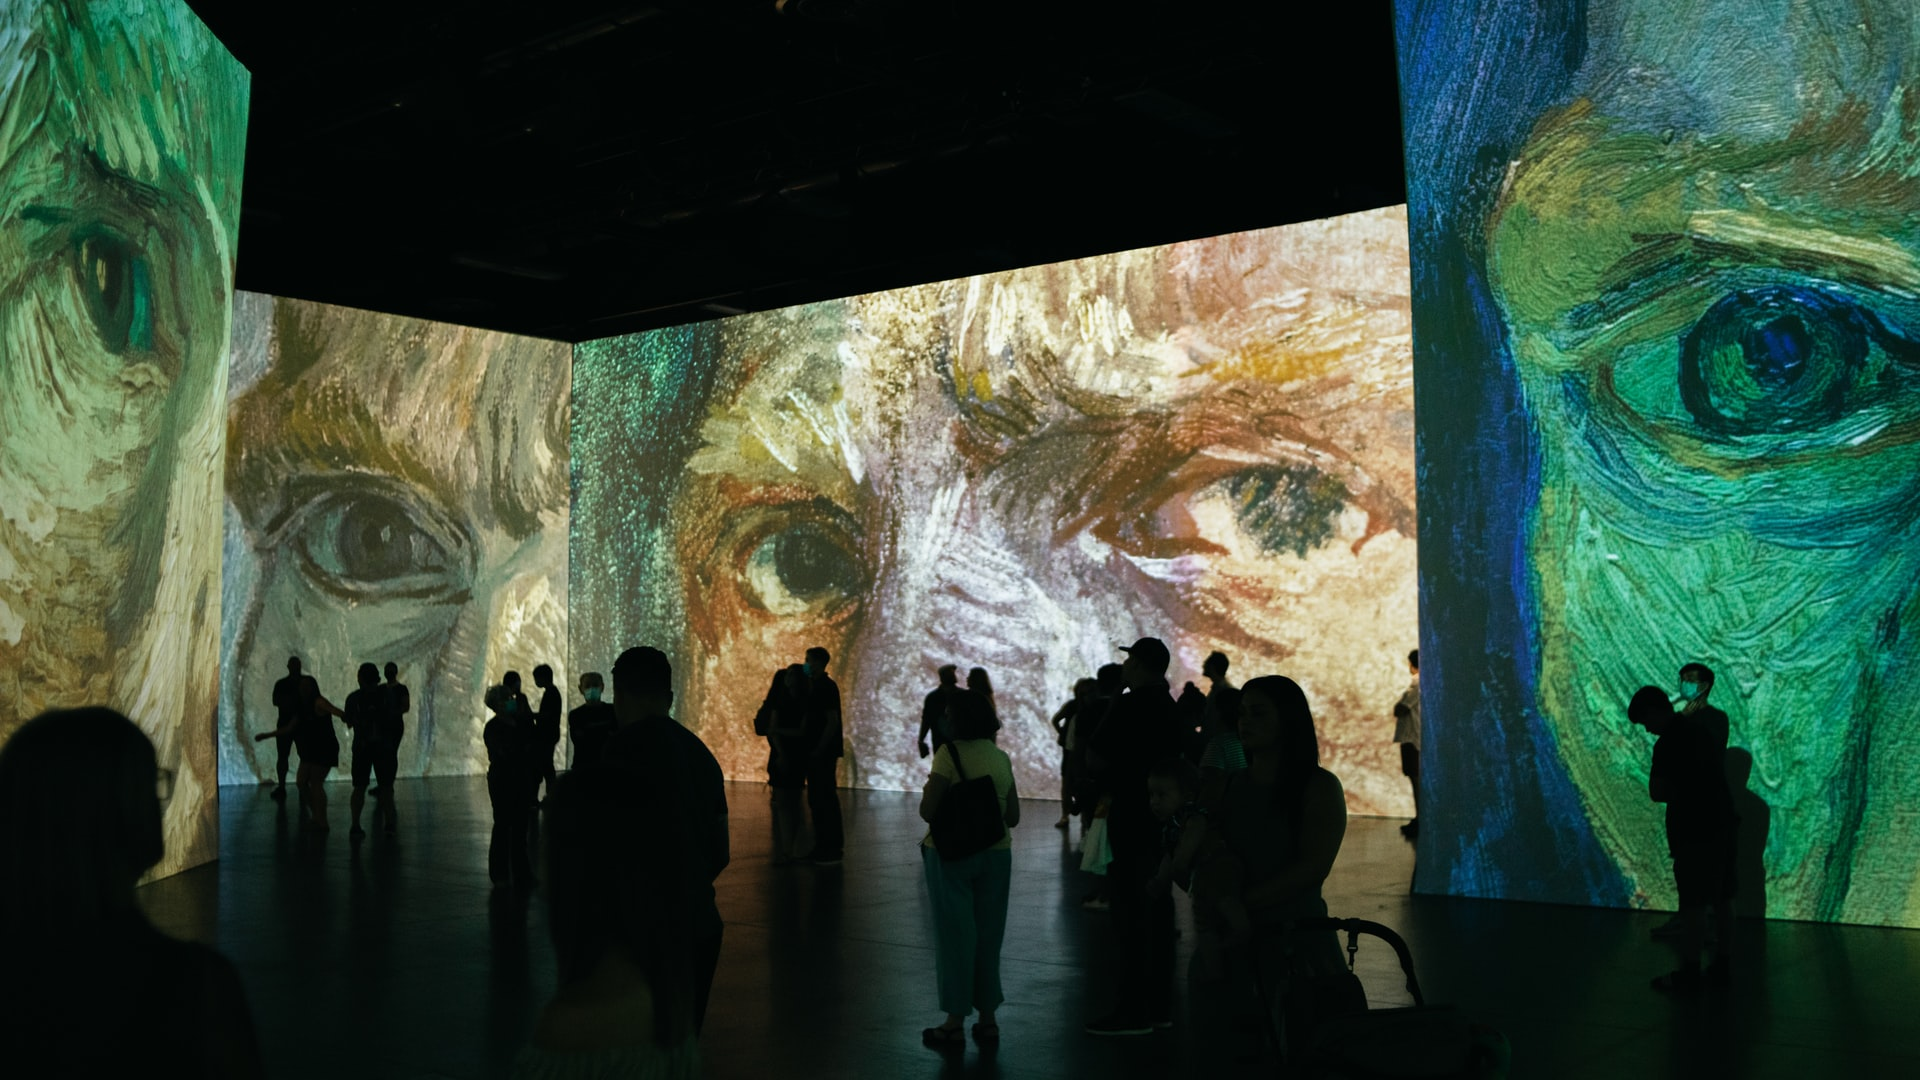 thumbnail image for blog Happening Now Near 880P: Van Gogh, The Immersive Experience